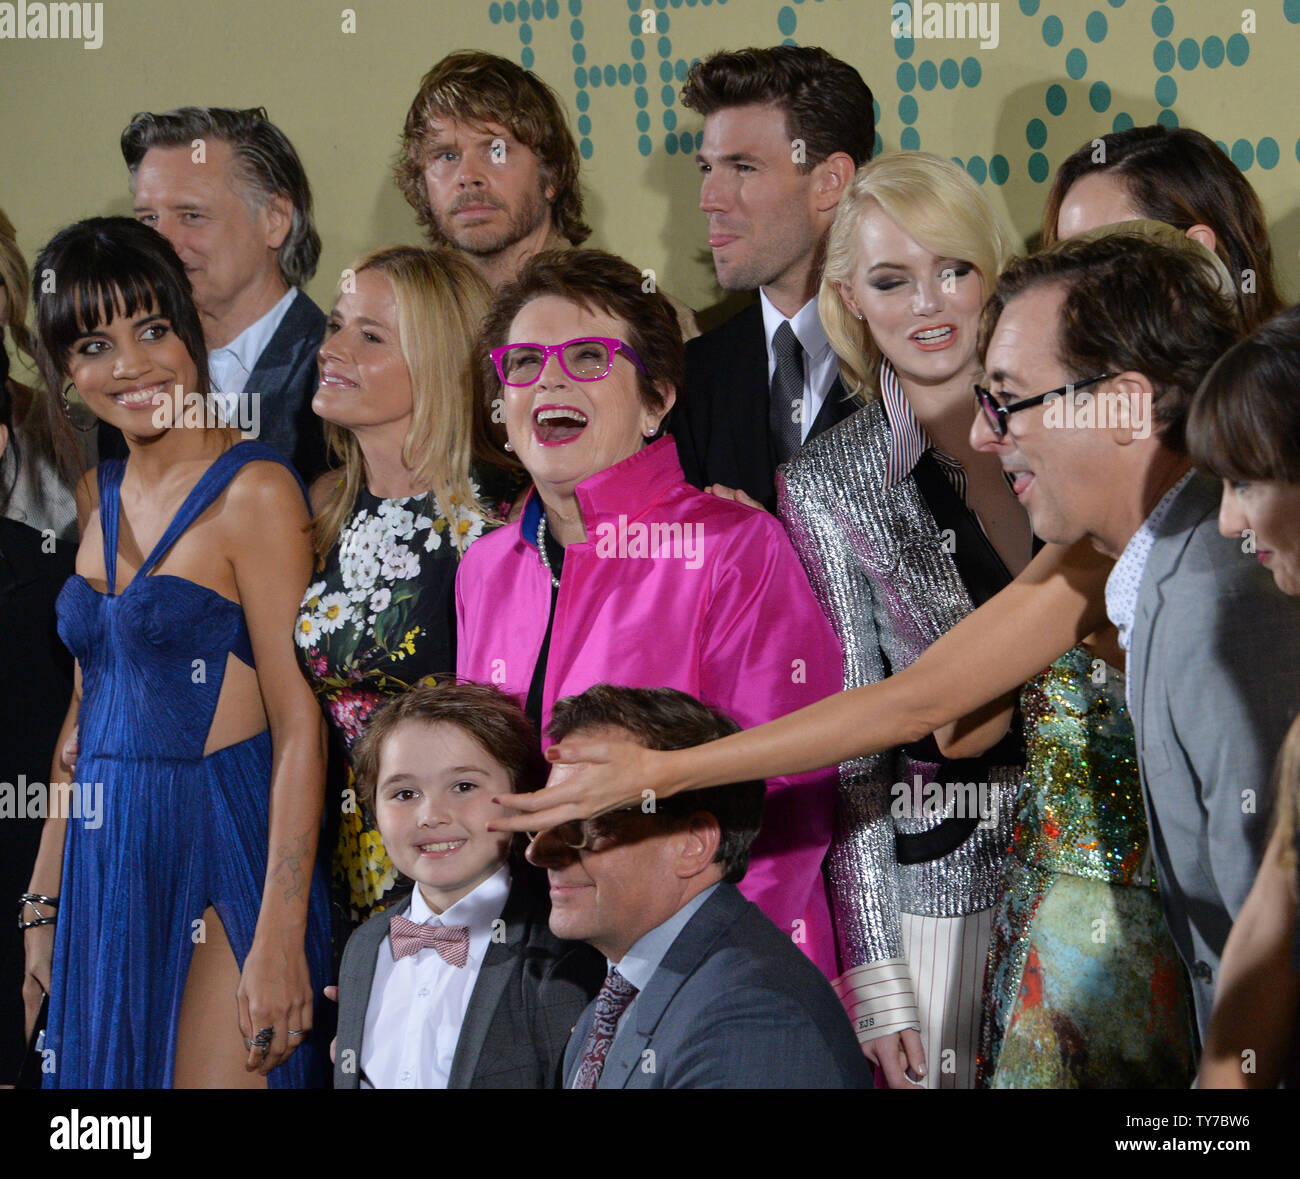 Former Tennis Player Billie Jean King C Is Joined By Cast Members During The Premiere Of The Biographical Sports Comedy Battle Of The Sexes At The Regency Village Theatre In The Westwood